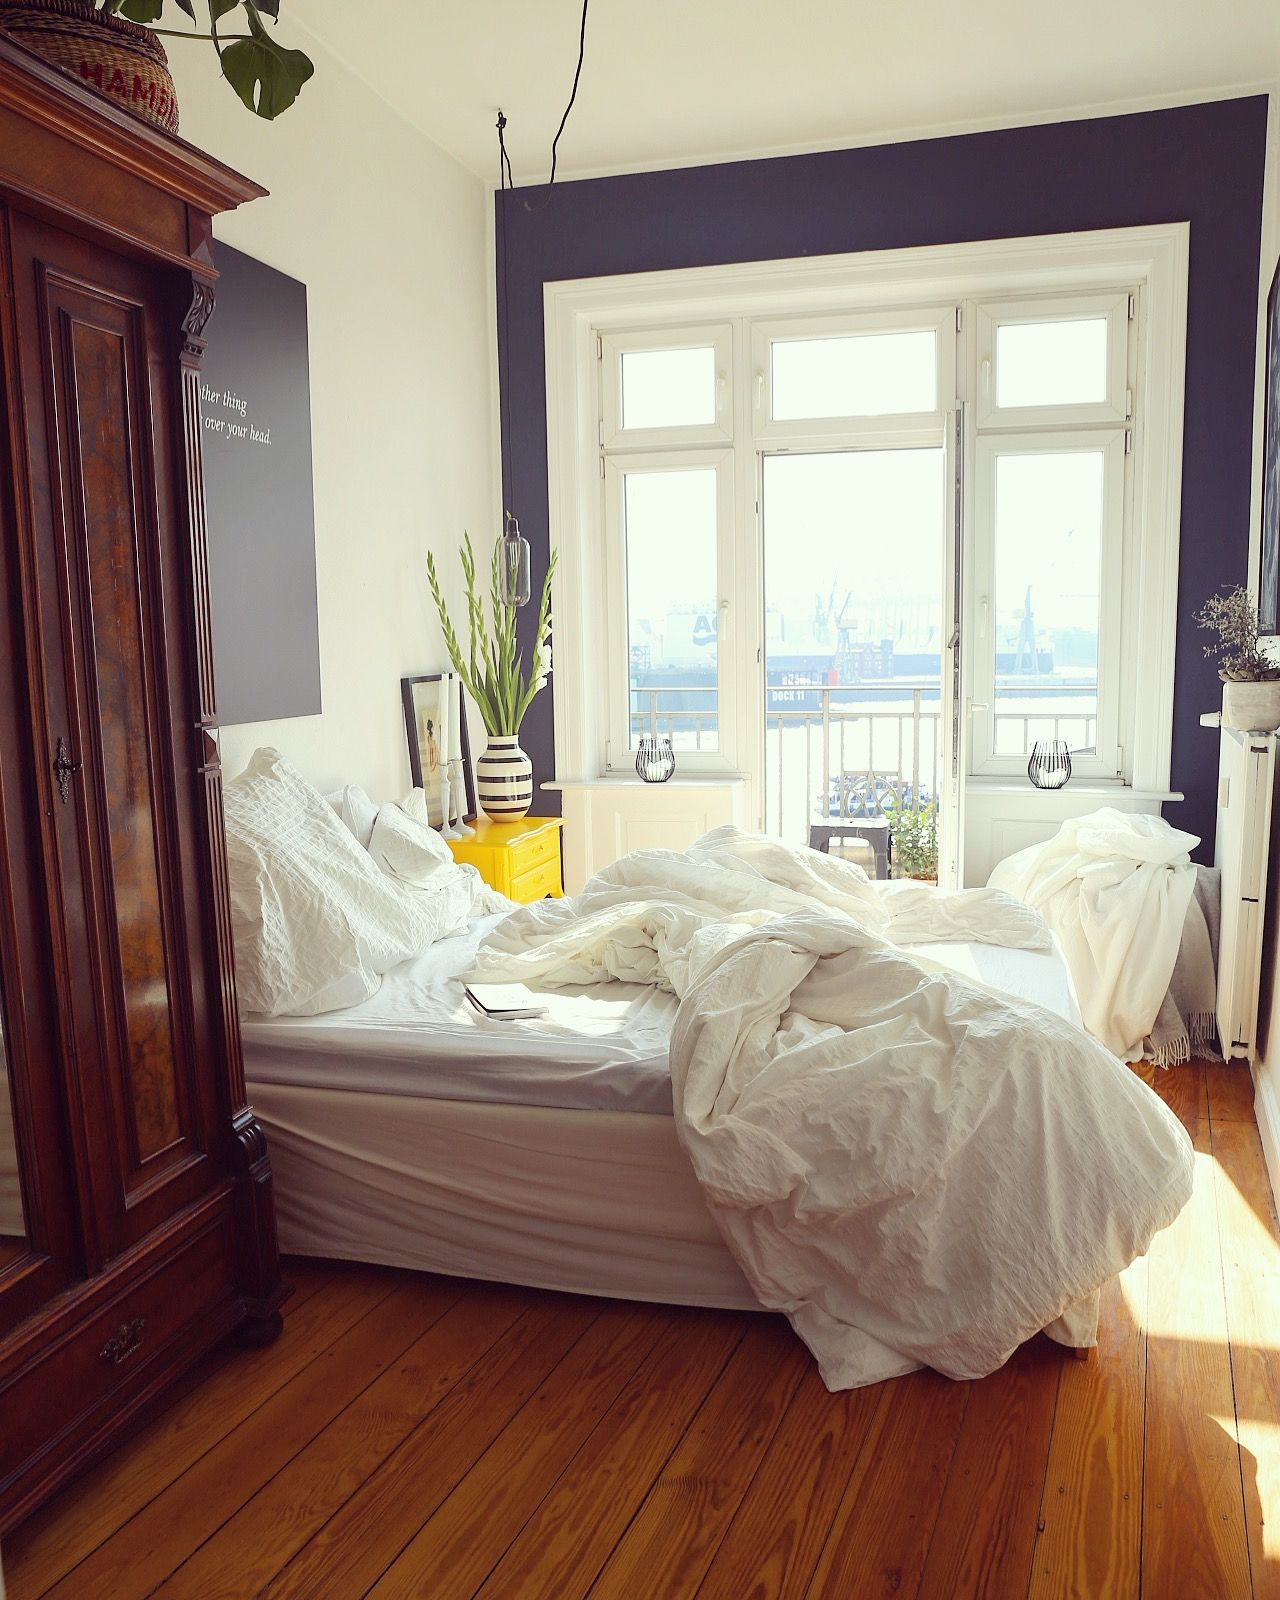 Schlafzimmer Hamburg bedroom with a view roomwithaview hamburg bed white